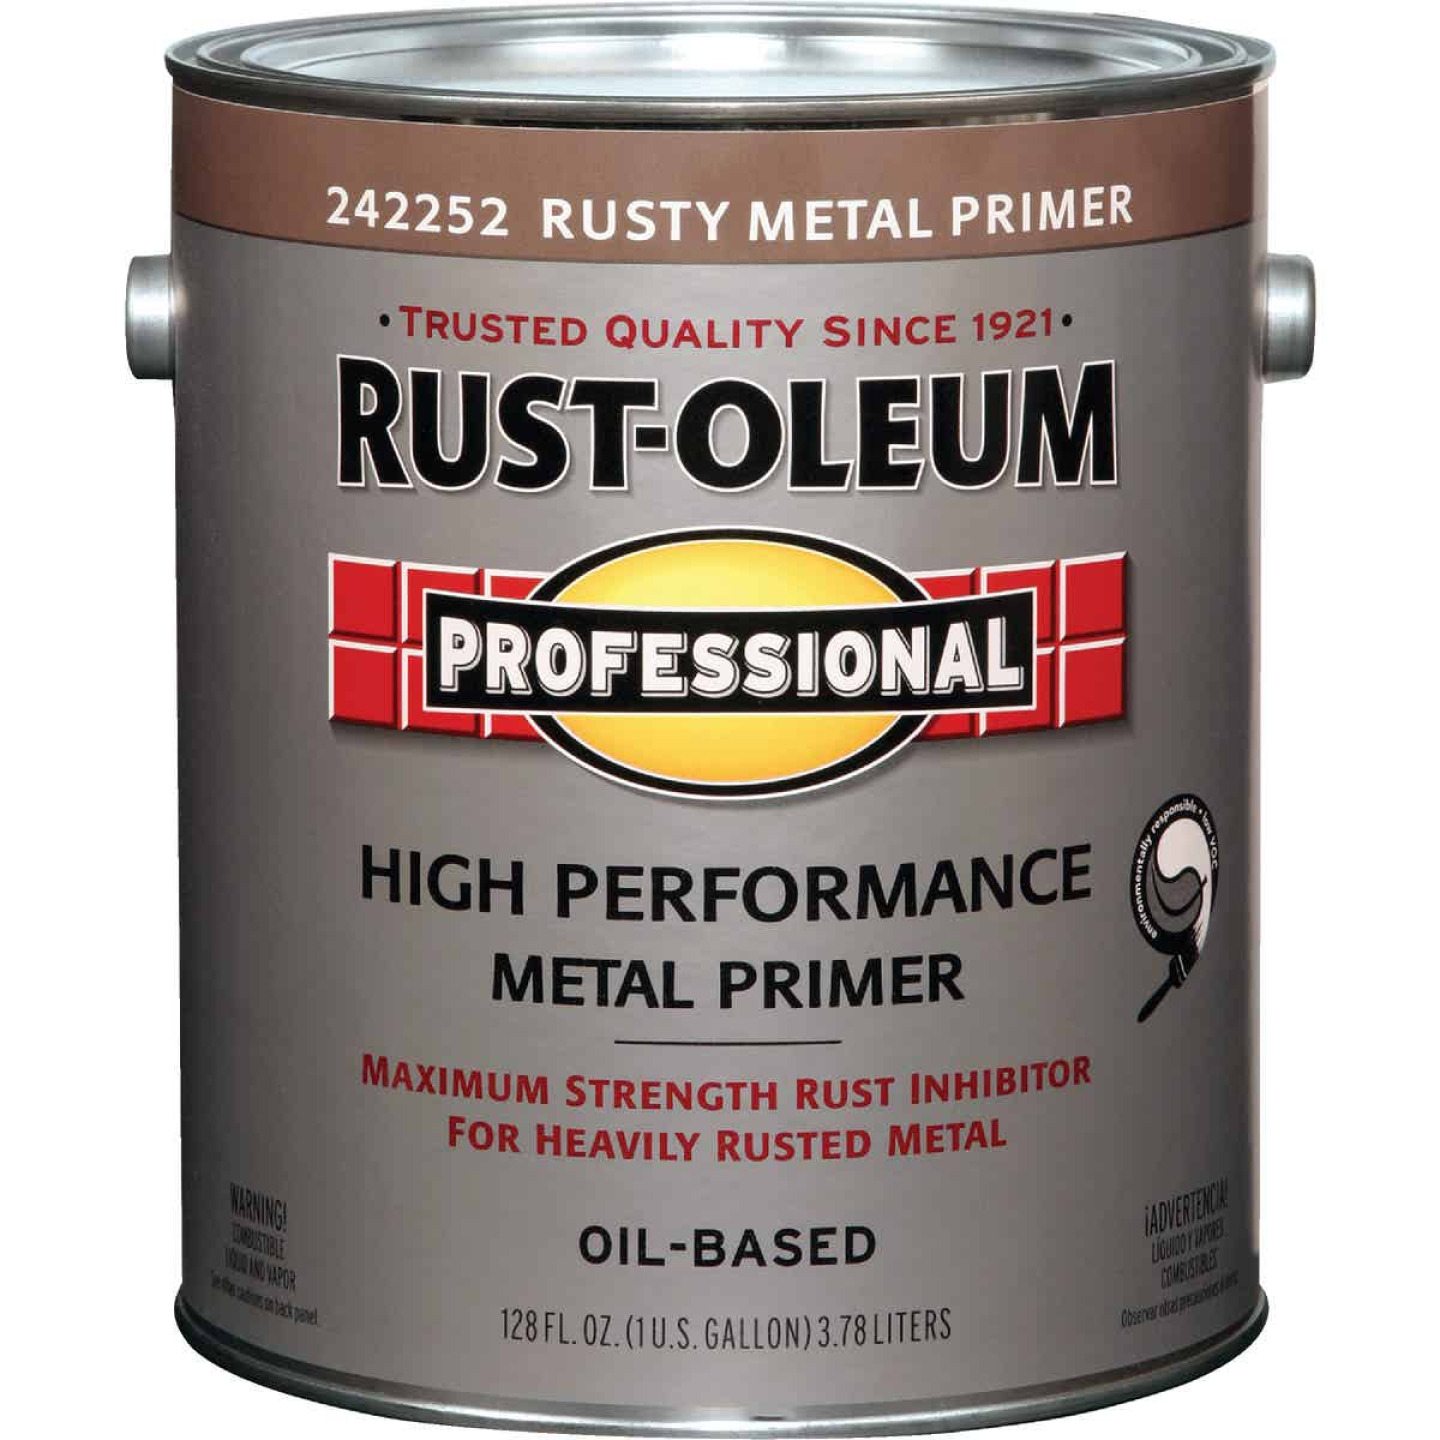 Rust-Oleum VOC Red Rusty Metal Primer For SCAQMD, Red, 1 Gal. Image 1